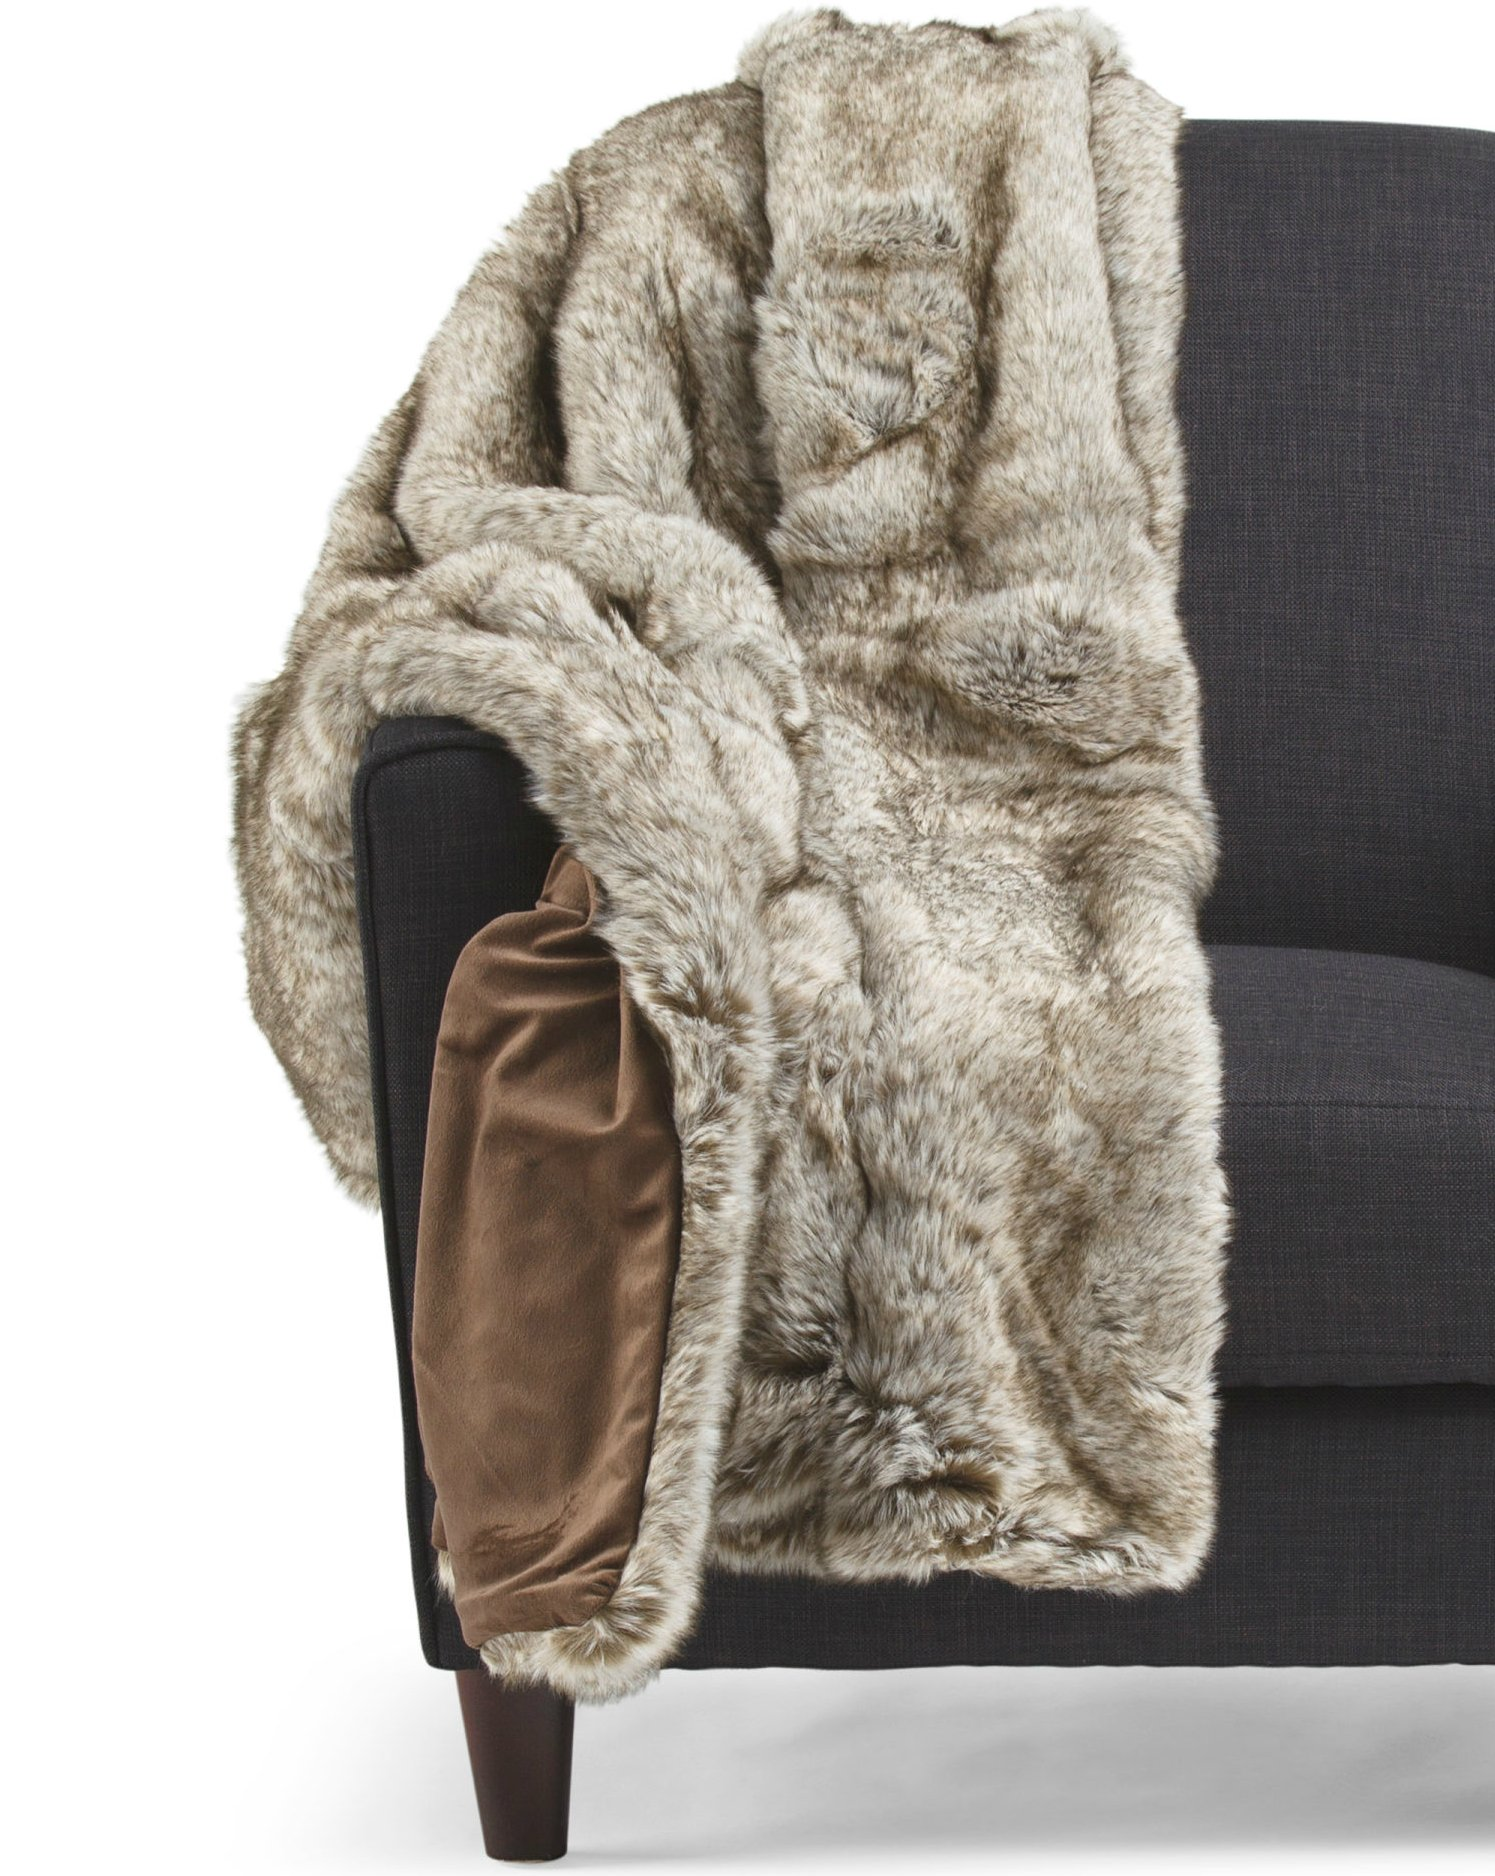 Tahari Mink Faux Fur Throw Luxury Silky Soft Blanket in Tan, Cream or White (Taupe)